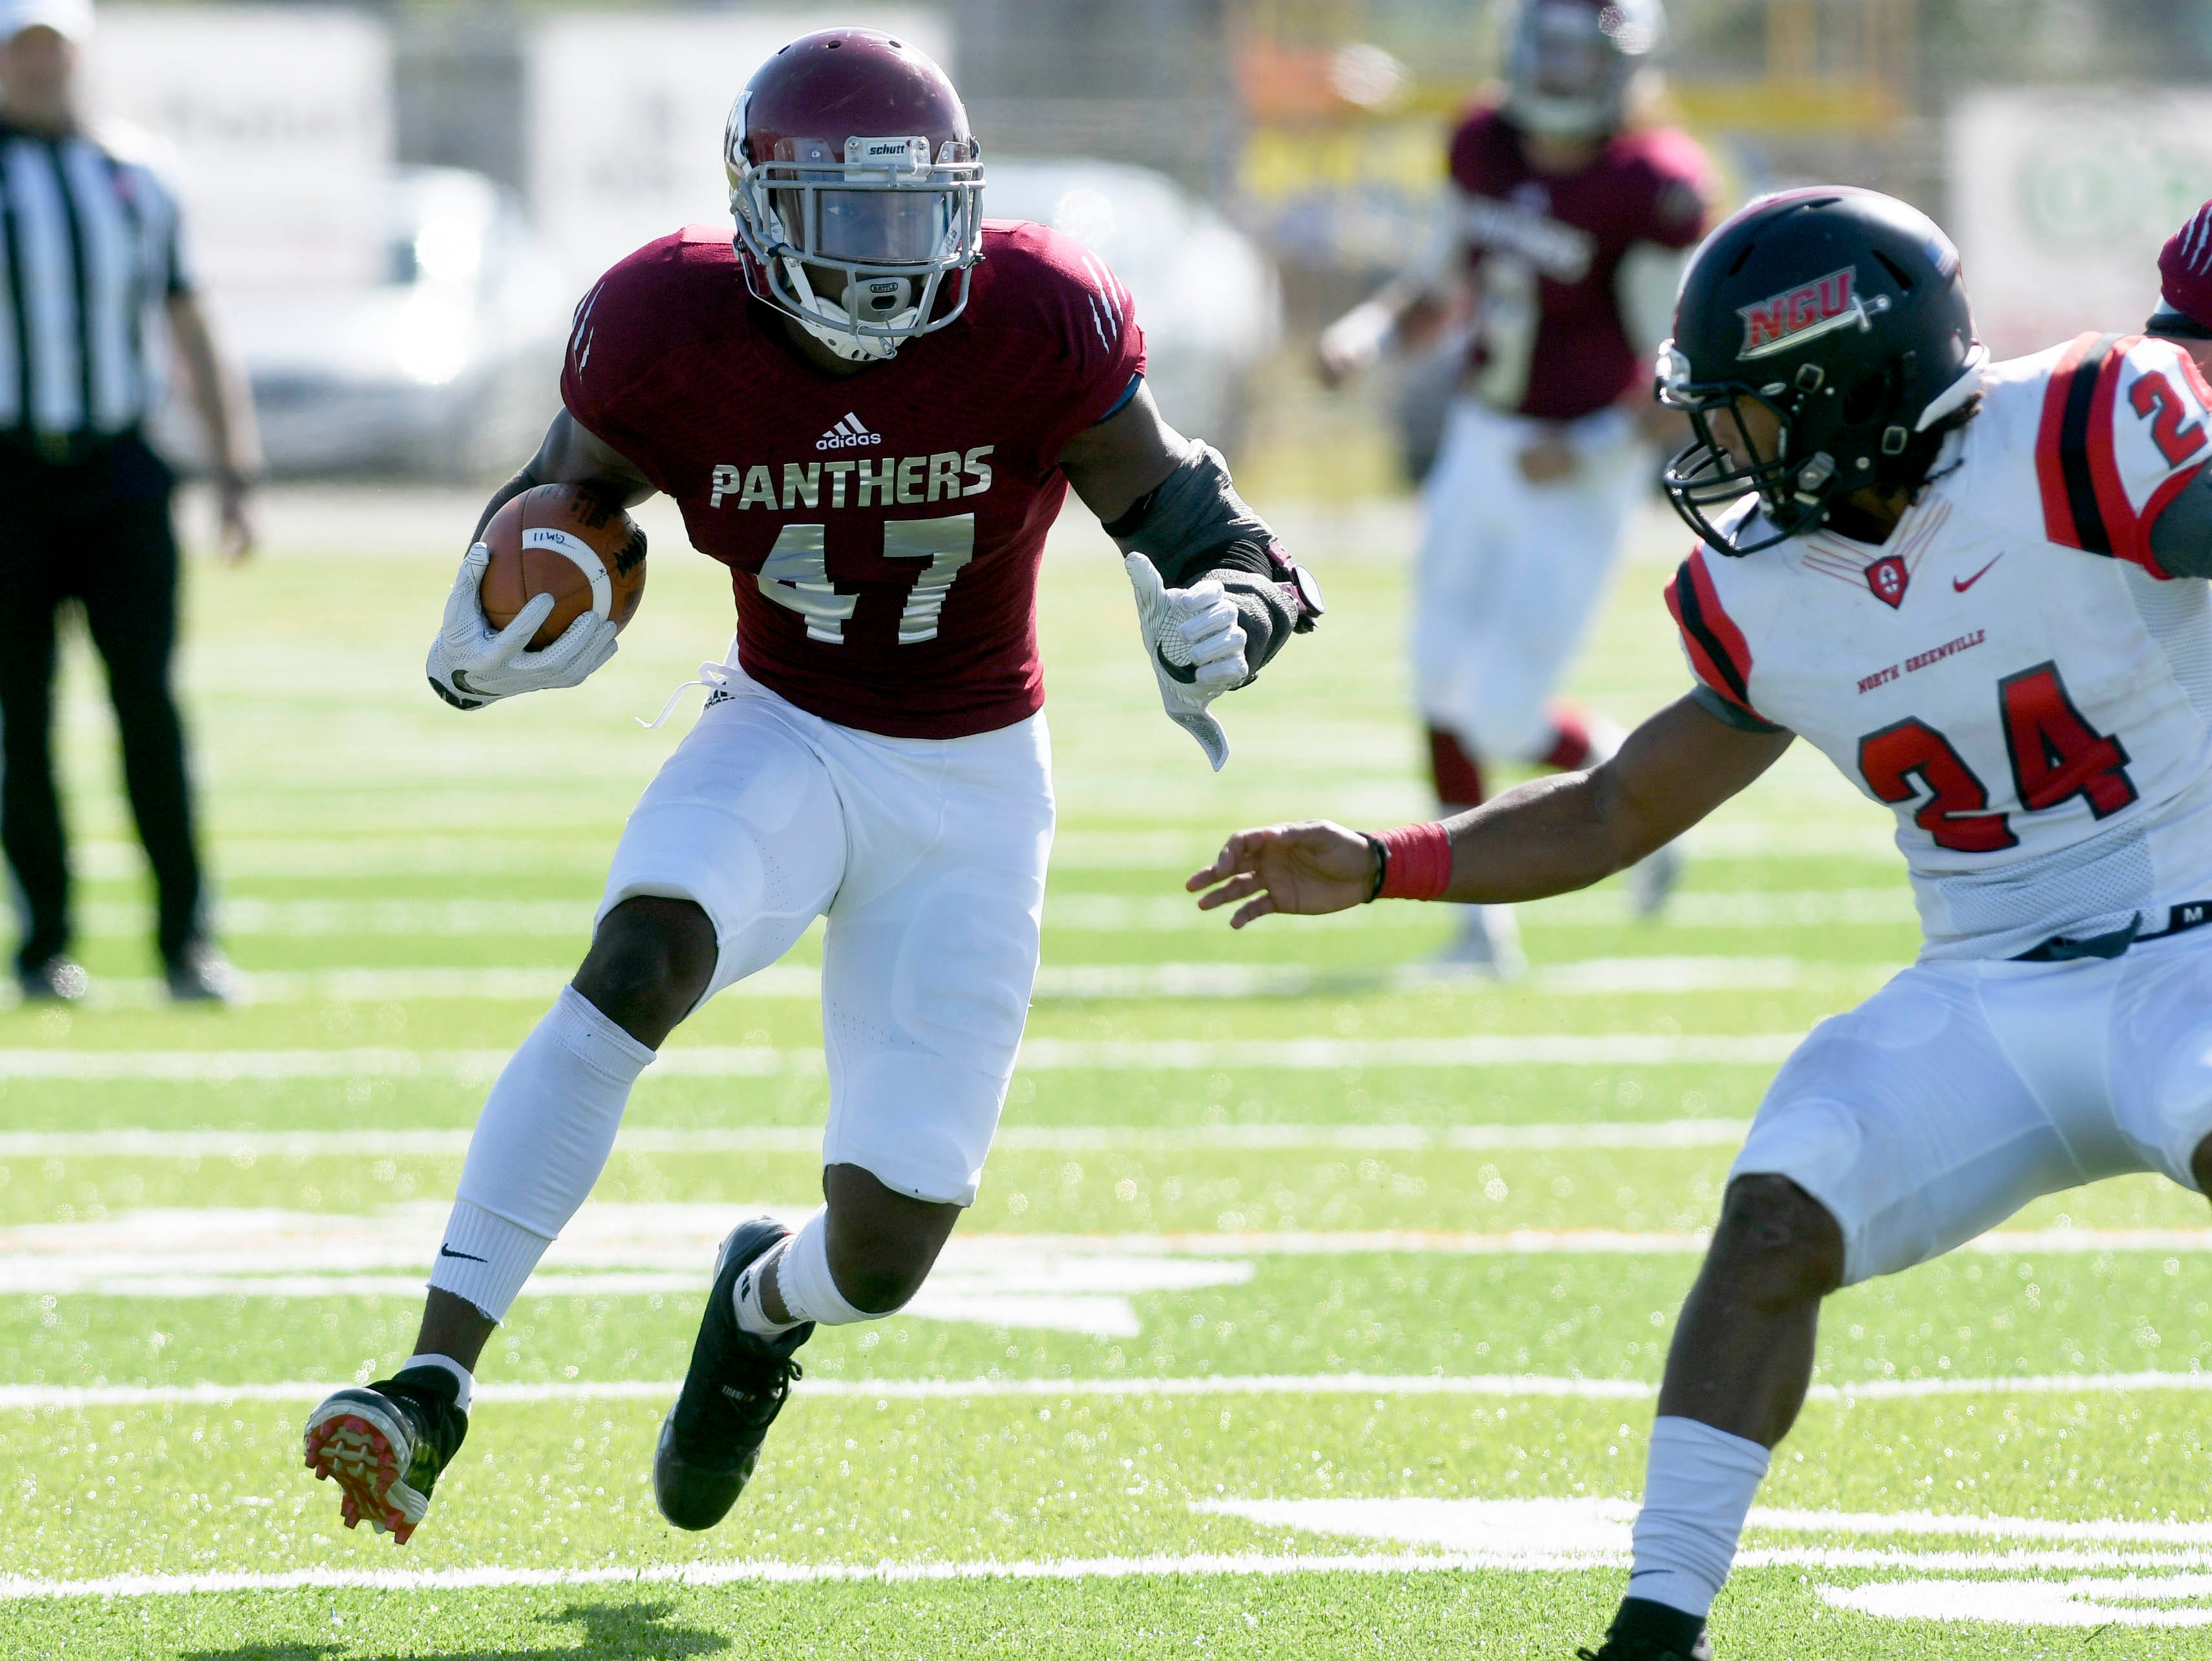 Damien McGhee of Florida Tech (47) tries to get around North Greenville defender Dominique Hunt during Saturday's game.